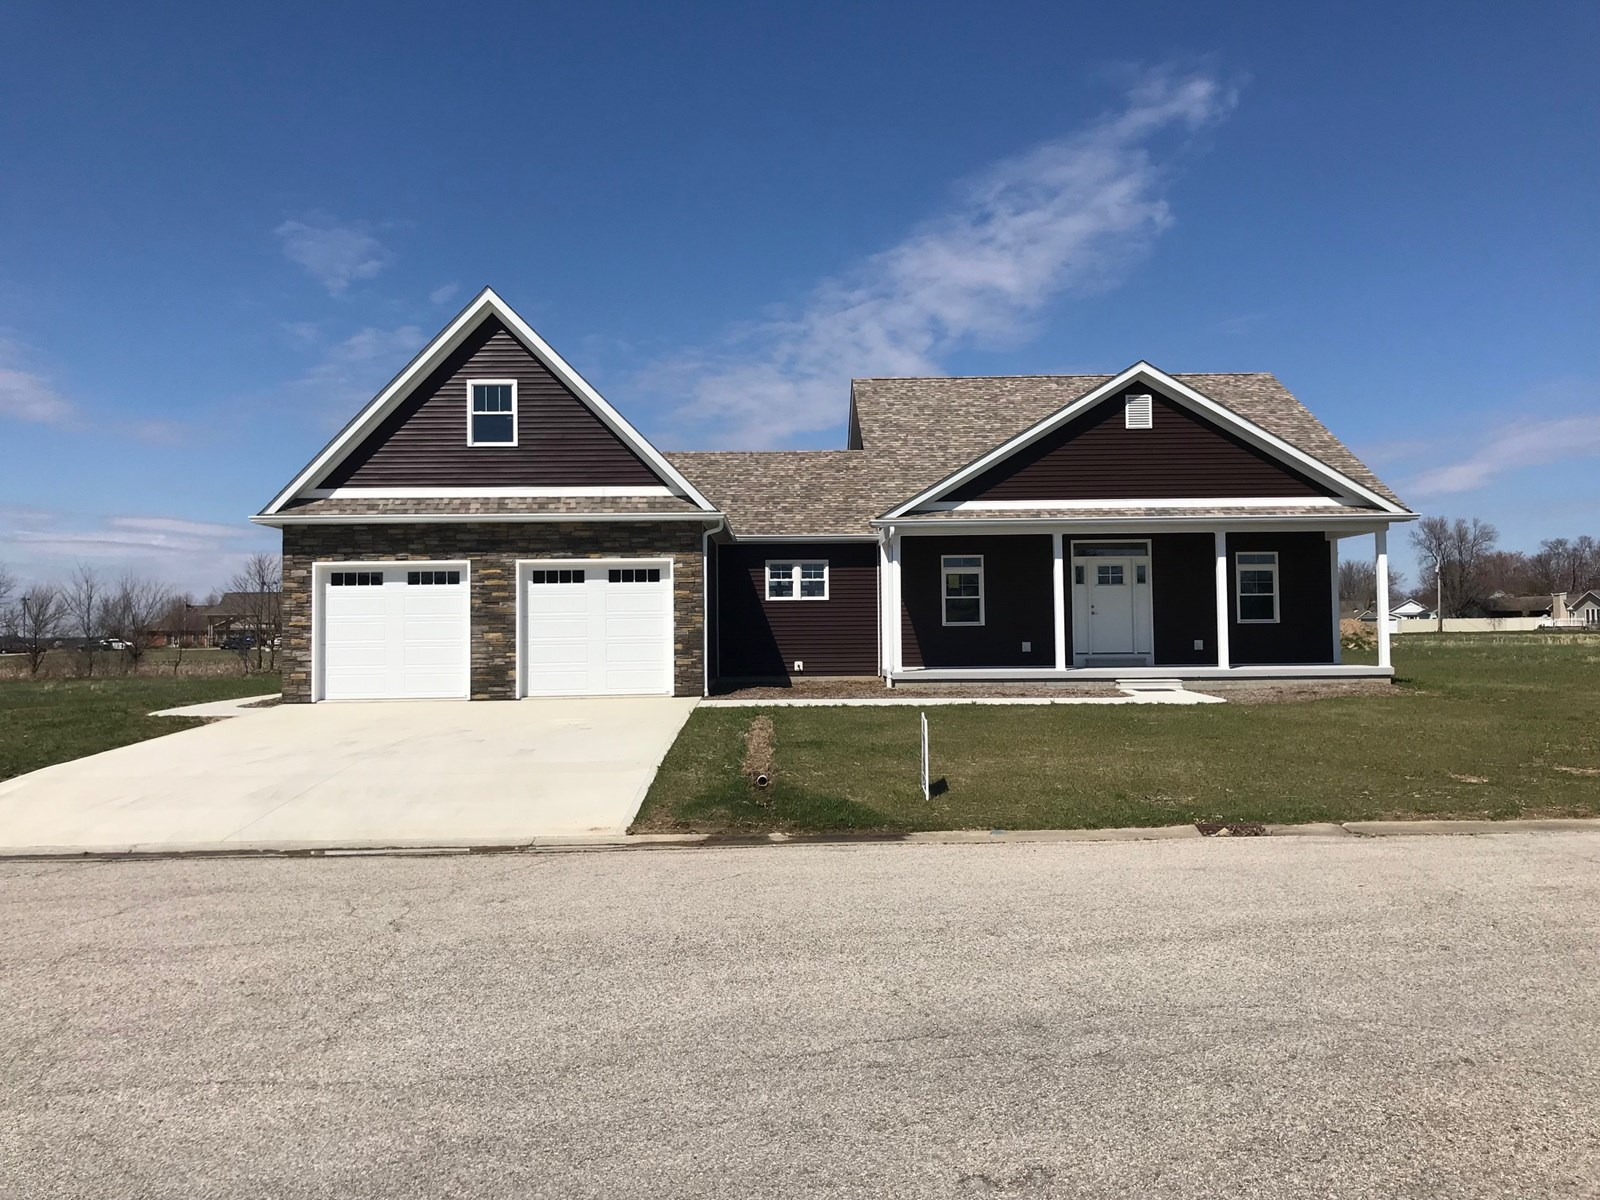 Home for Sale, Robinson, IL, New Construction